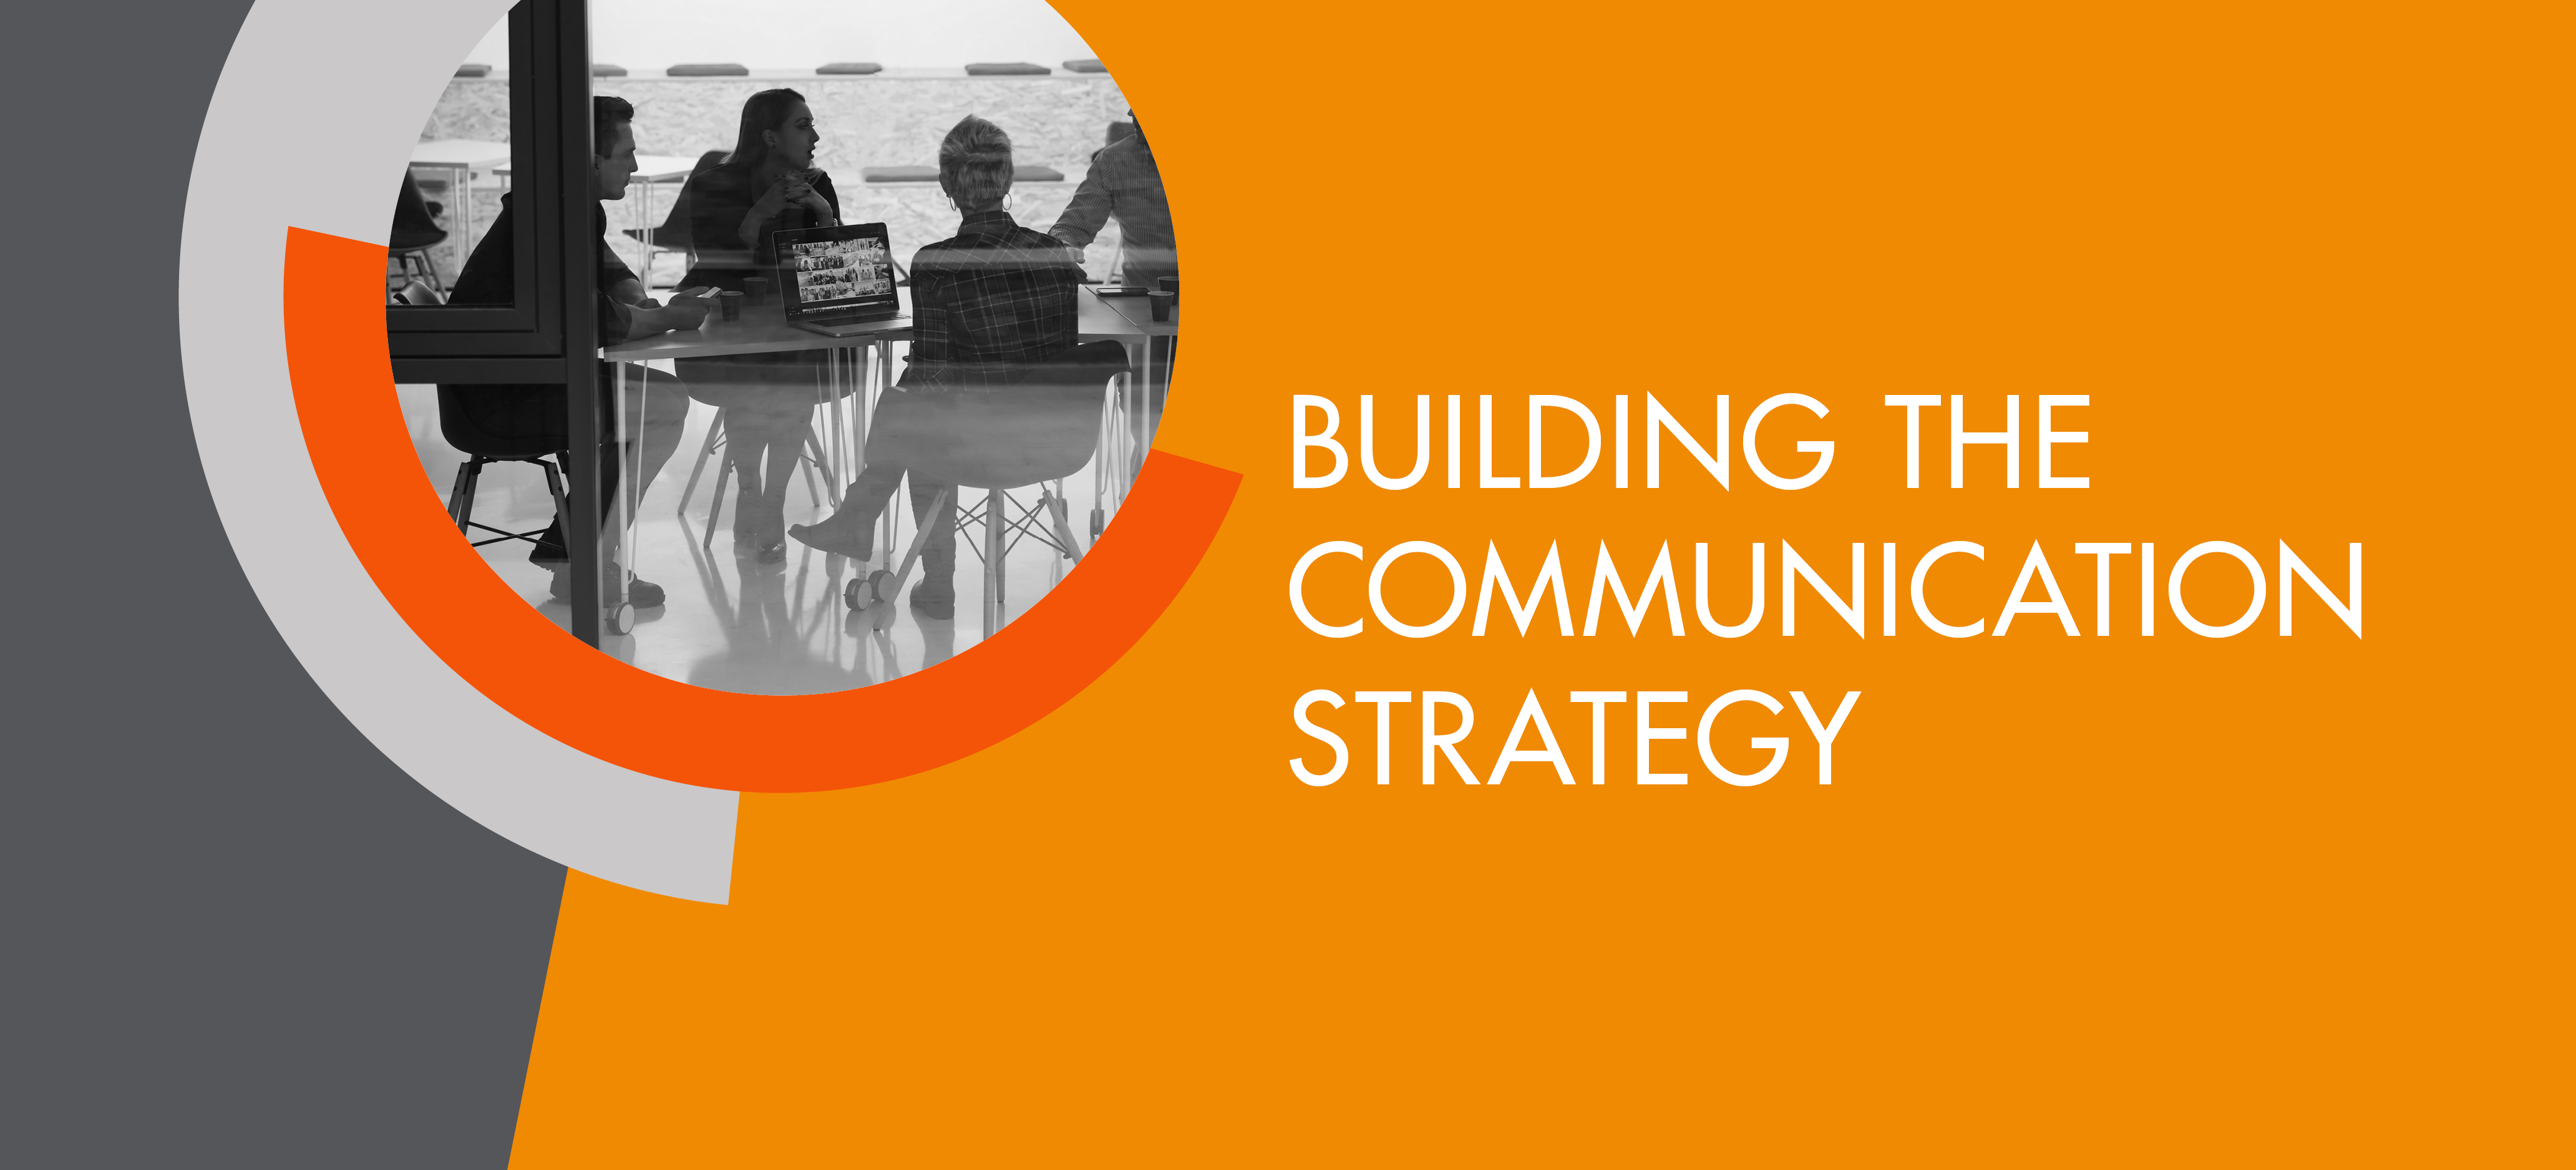 Building the COMMUNICATION STRATEGY